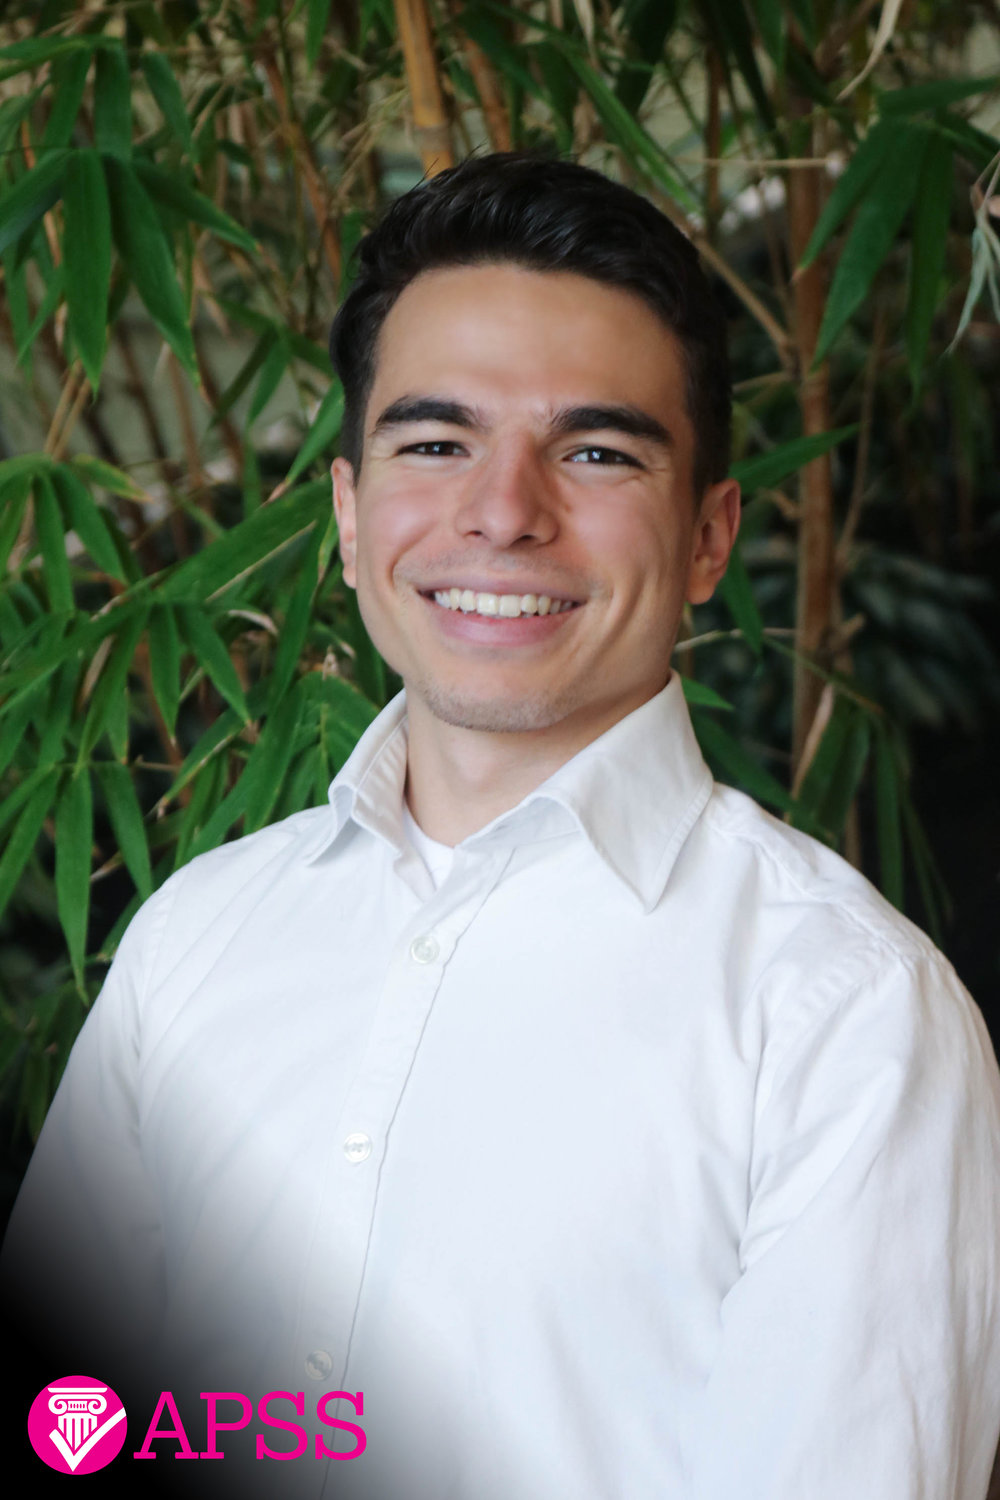 Daniel is a fourth year student from Costa Rica and is double-majoring in Political Science and Peace, Conflict, and Justice Studies (PCJ) with a minor in History. His areas of study include international relations, ethnic and cultural conflict, geopolitics, diplomacy, and global security. This is Daniel's second year with the APSS and is excited to provide the financial support to make a positive impact on students' lives through social and academic events. Daniel enjoys watching political and legal dramas, reading  The Economist , playing soccer, and road running.